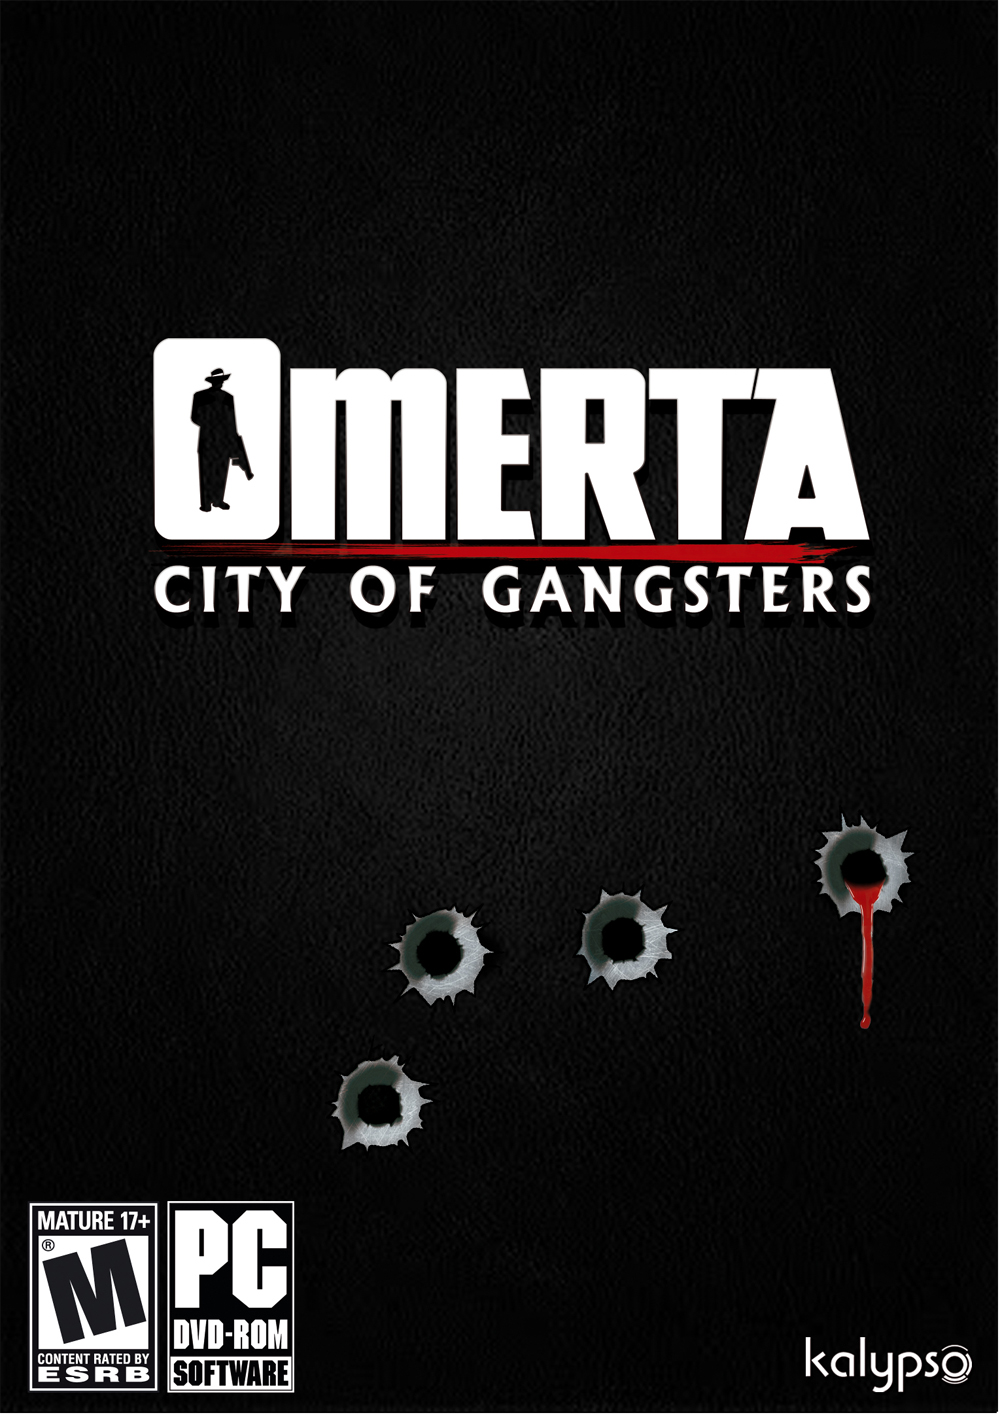 Gangsters: Organized Crime - why the world needs a new mafia